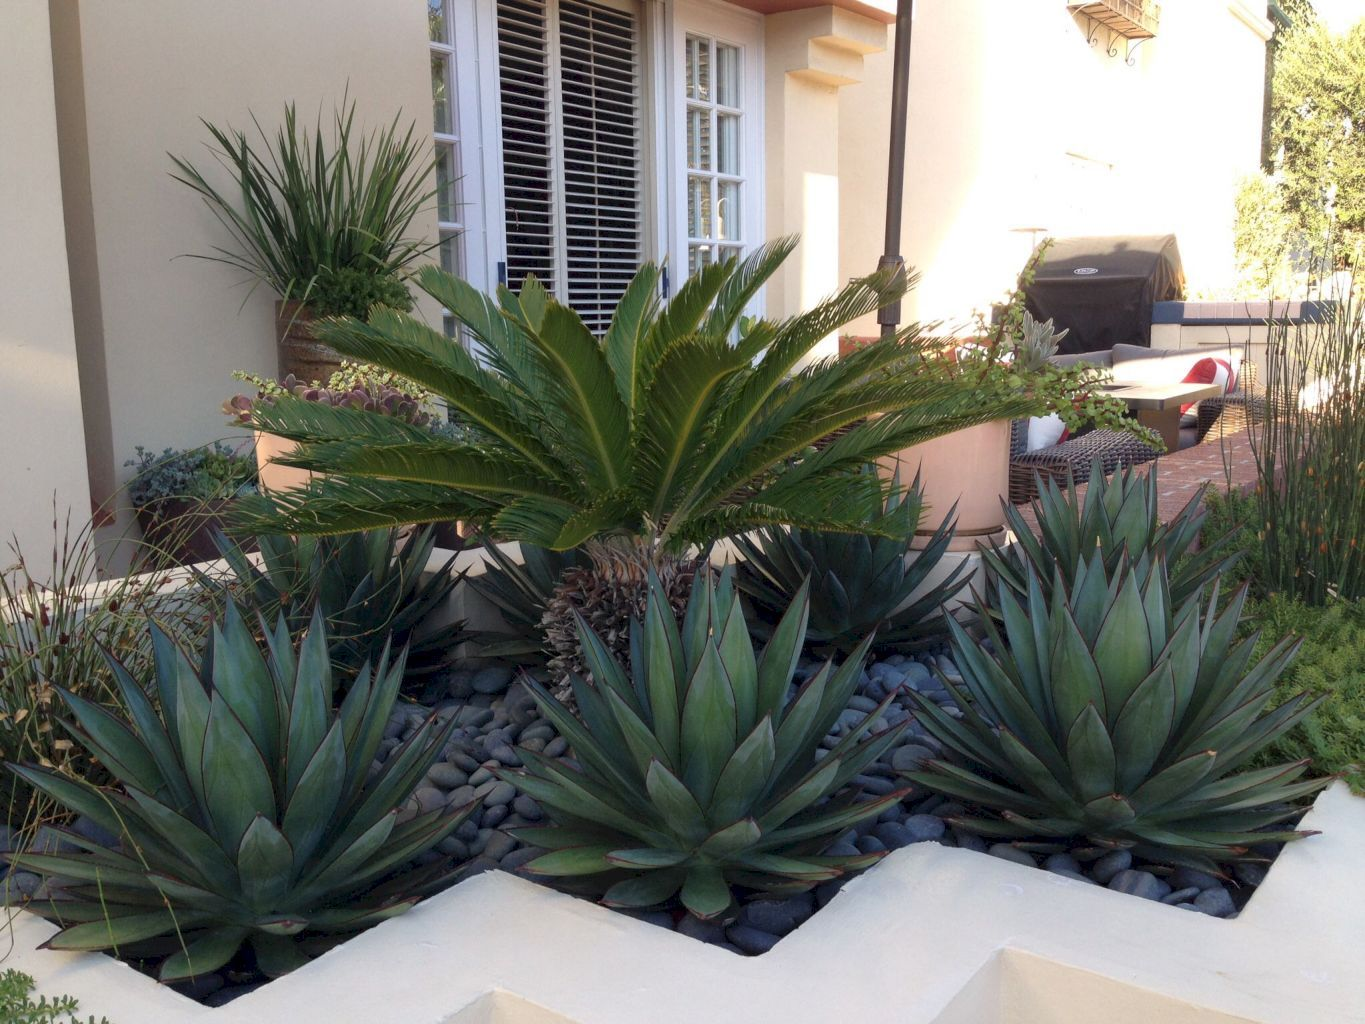 Cool 35 Awesome Modern Front Yard Landscaping Ideas Https Homeideas Co 2939 35 Awesome Mod Modern Landscaping Modern Front Yard Front Yard Landscaping Design